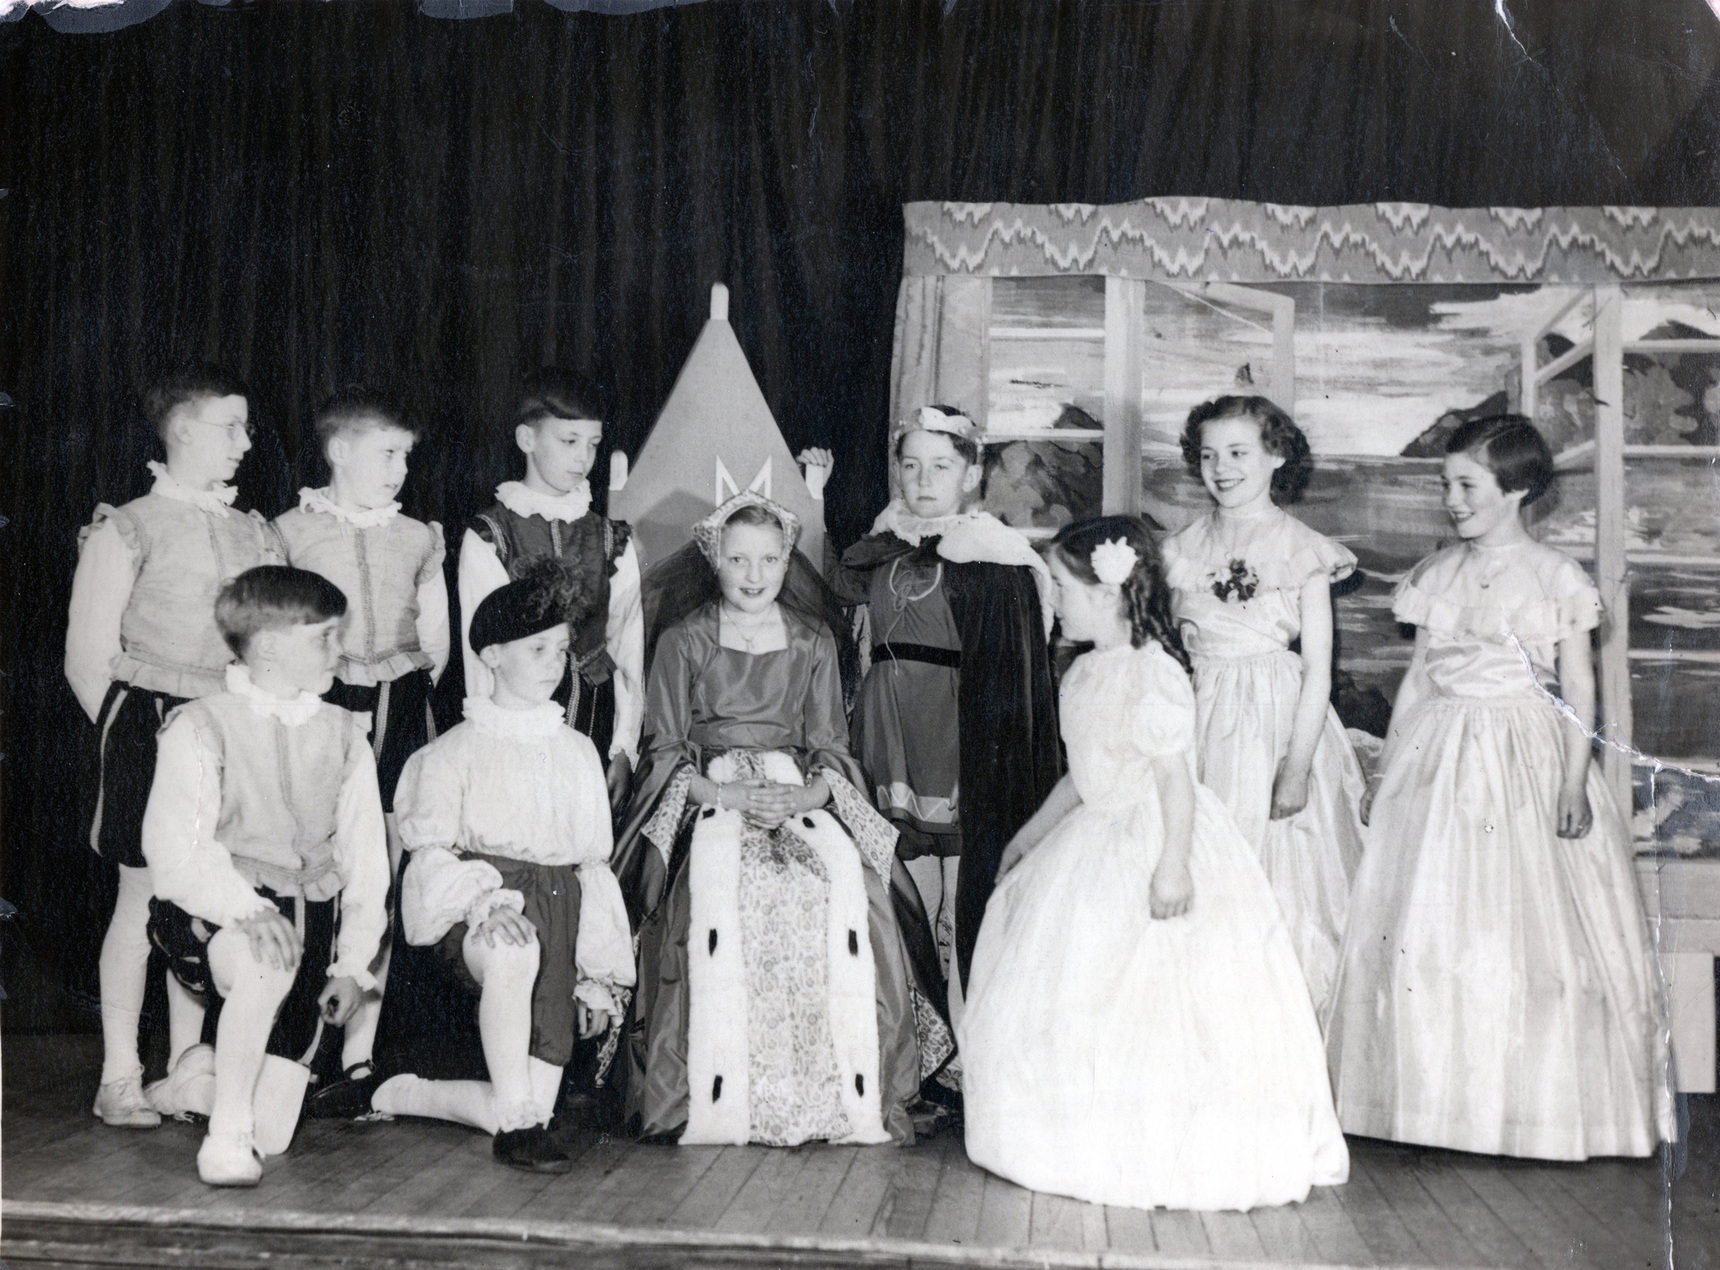 Newhaven Gala Queen And Entourage At Victoria School, June 1955